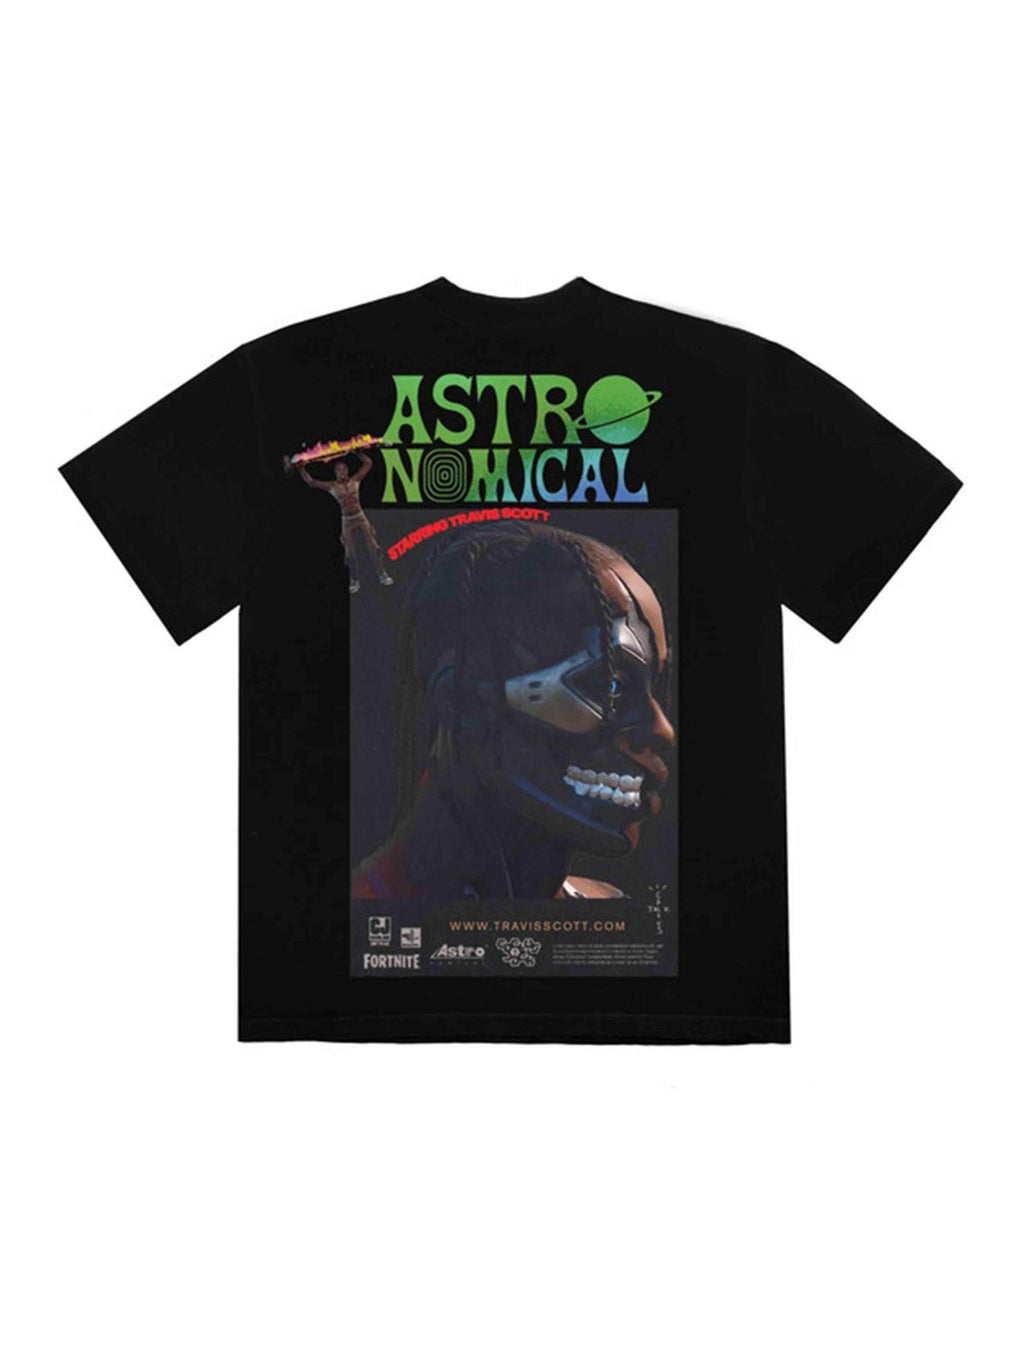 Travis Scott Astro Sicko Event 2 T-Shirt Black - PRIOR